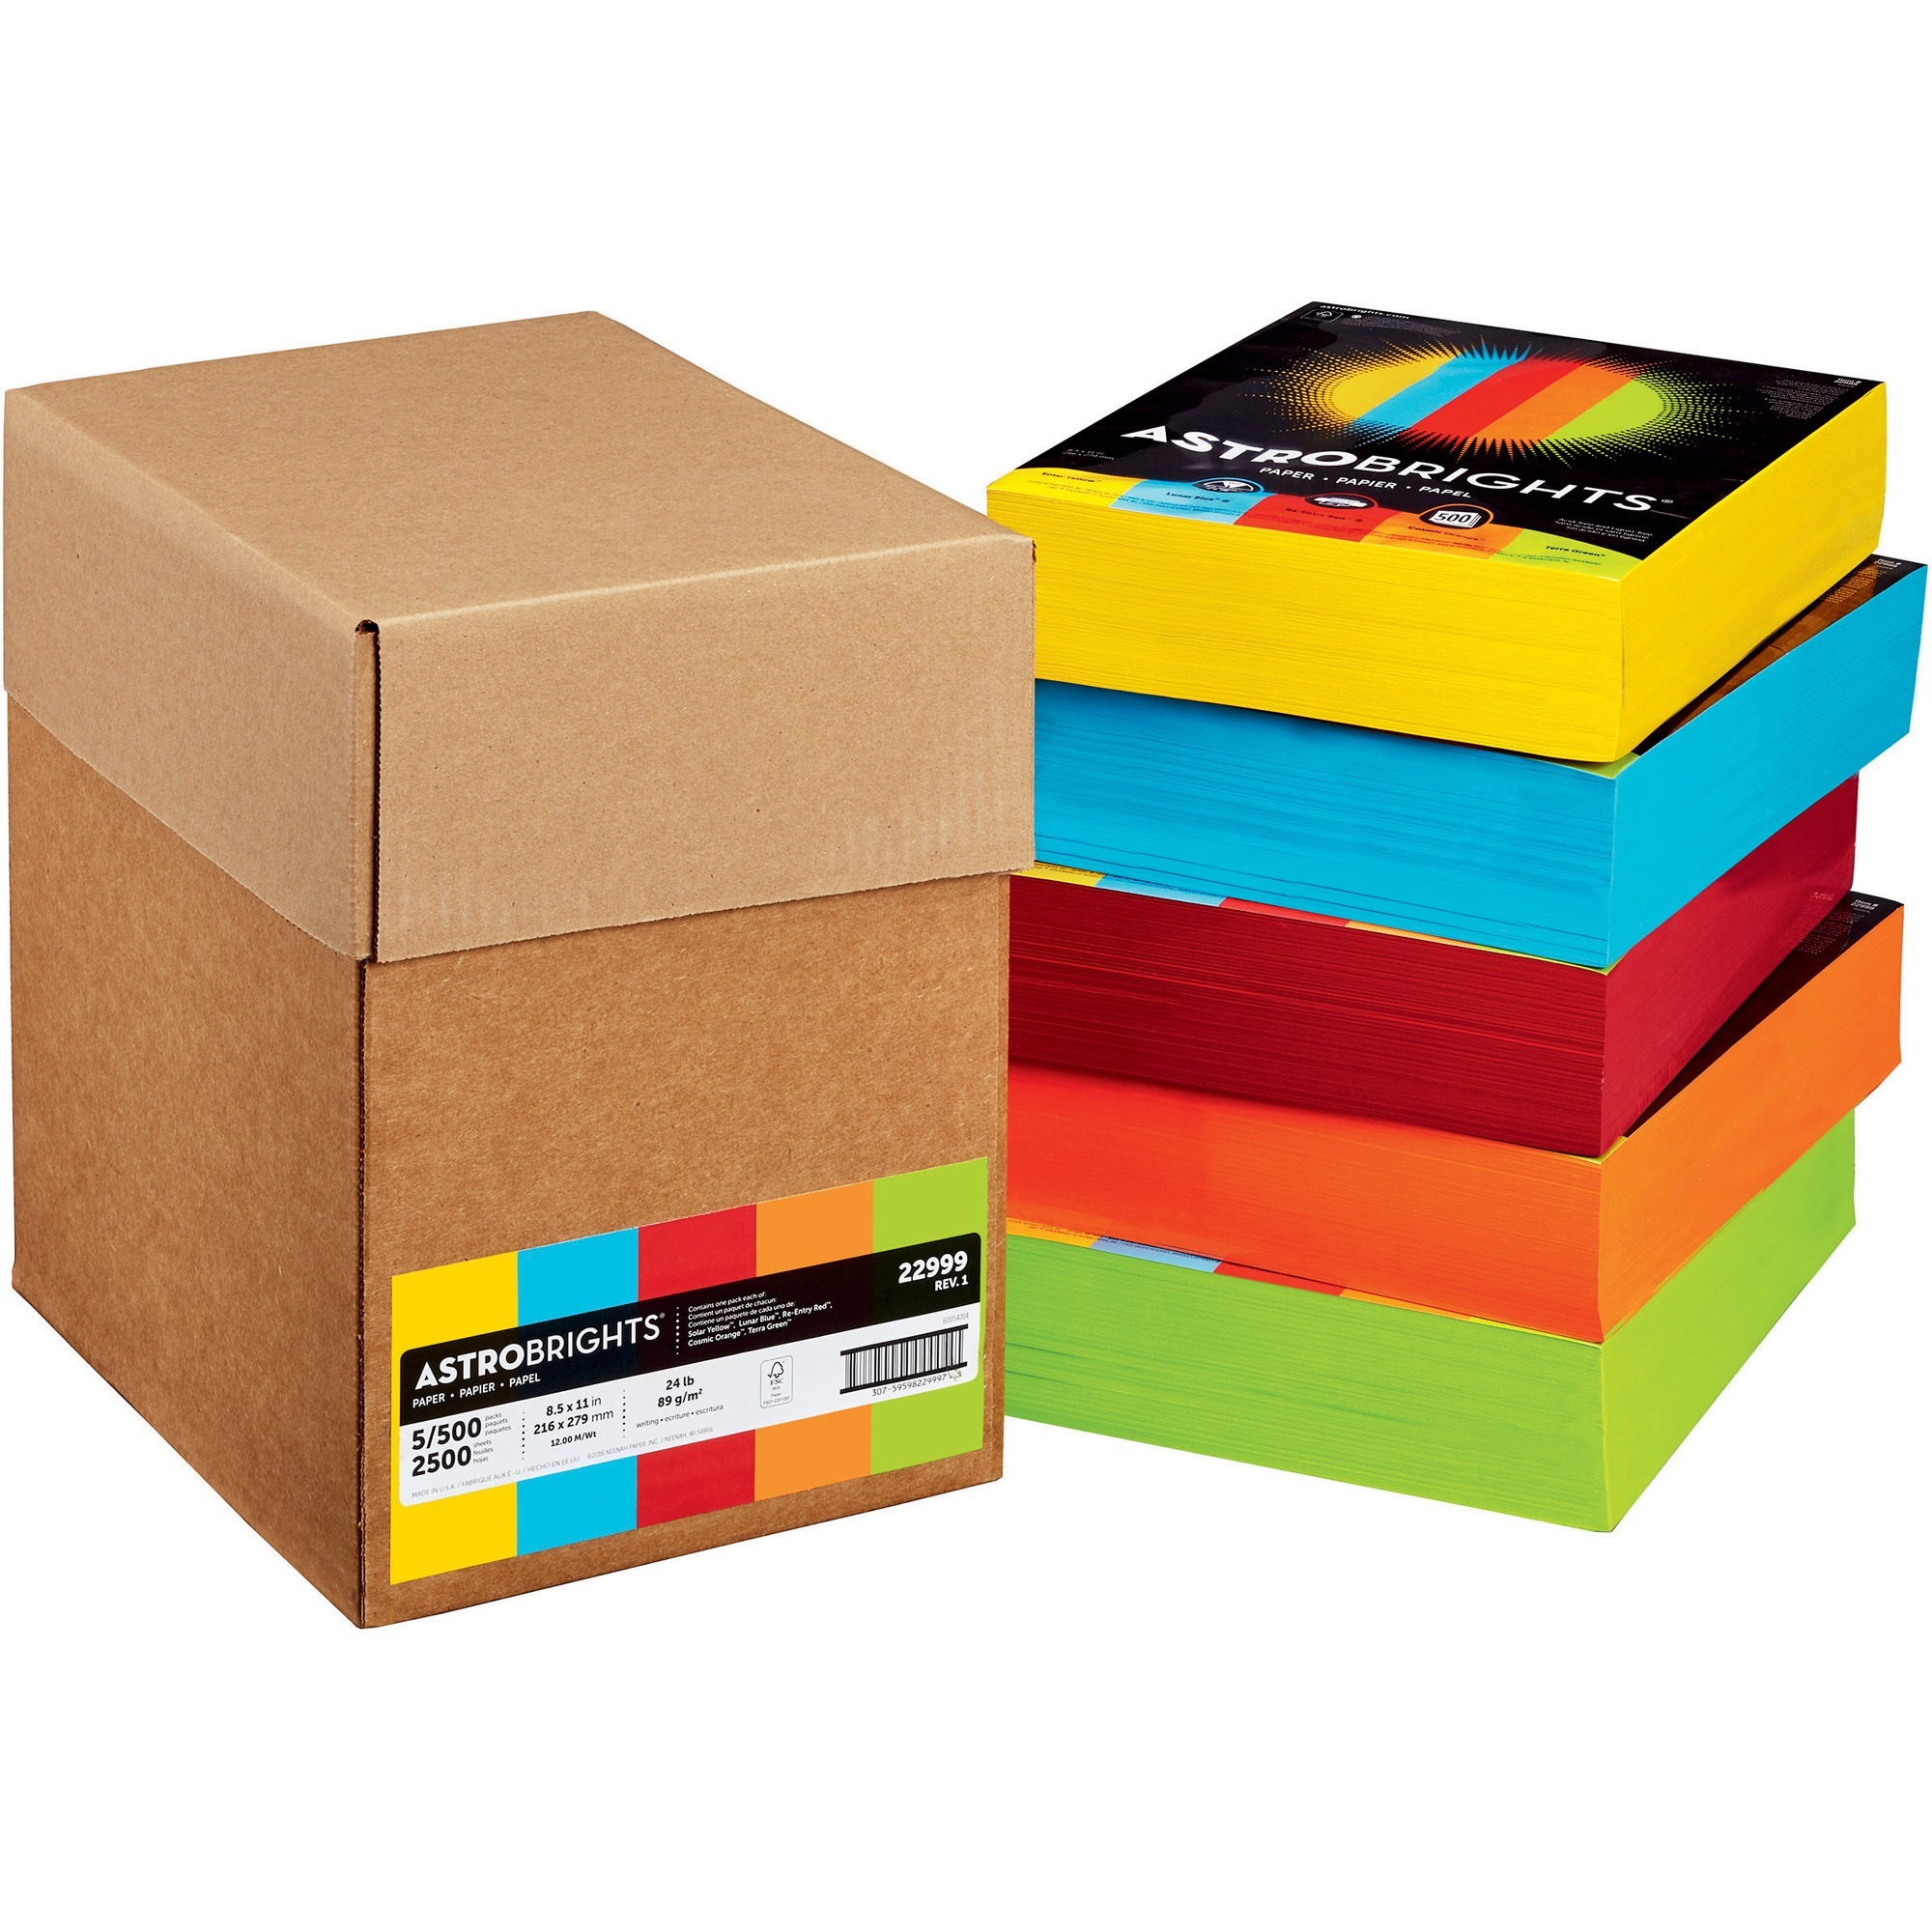 Product WAU22999 Astrobrights Inkjet Laser Print Colored Paper